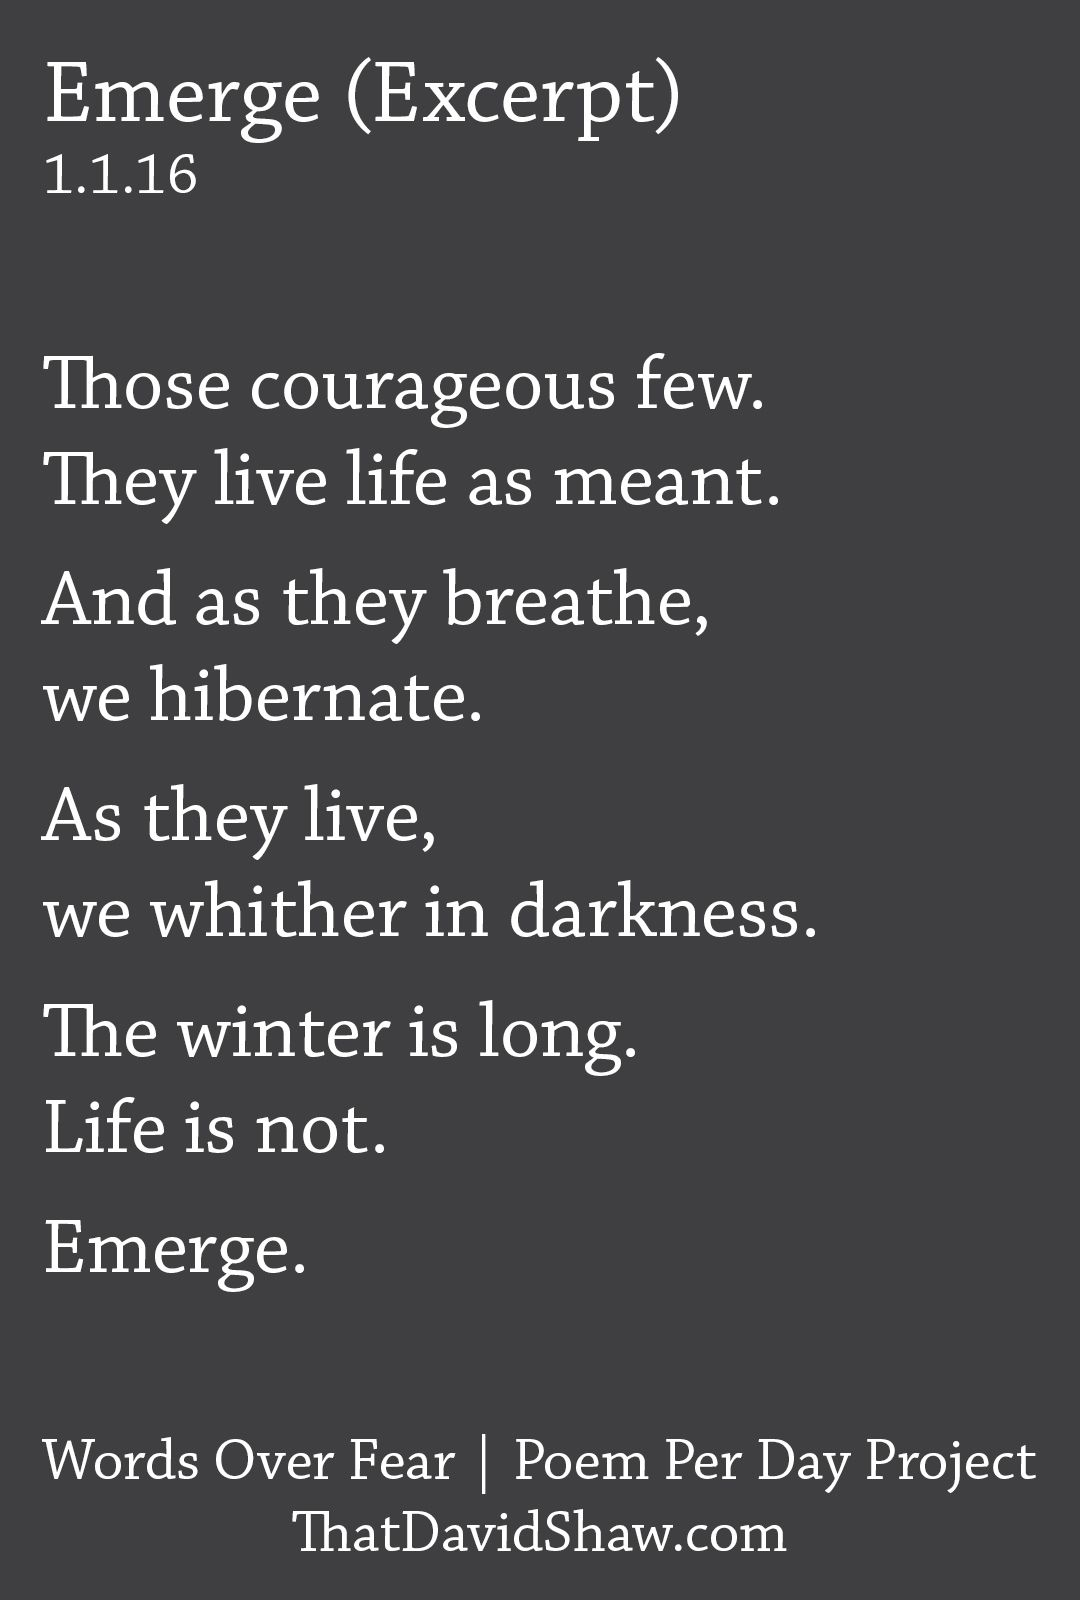 Long Life Quotes Those Courageous Fewthey Live Life As Meantand As They Breathe